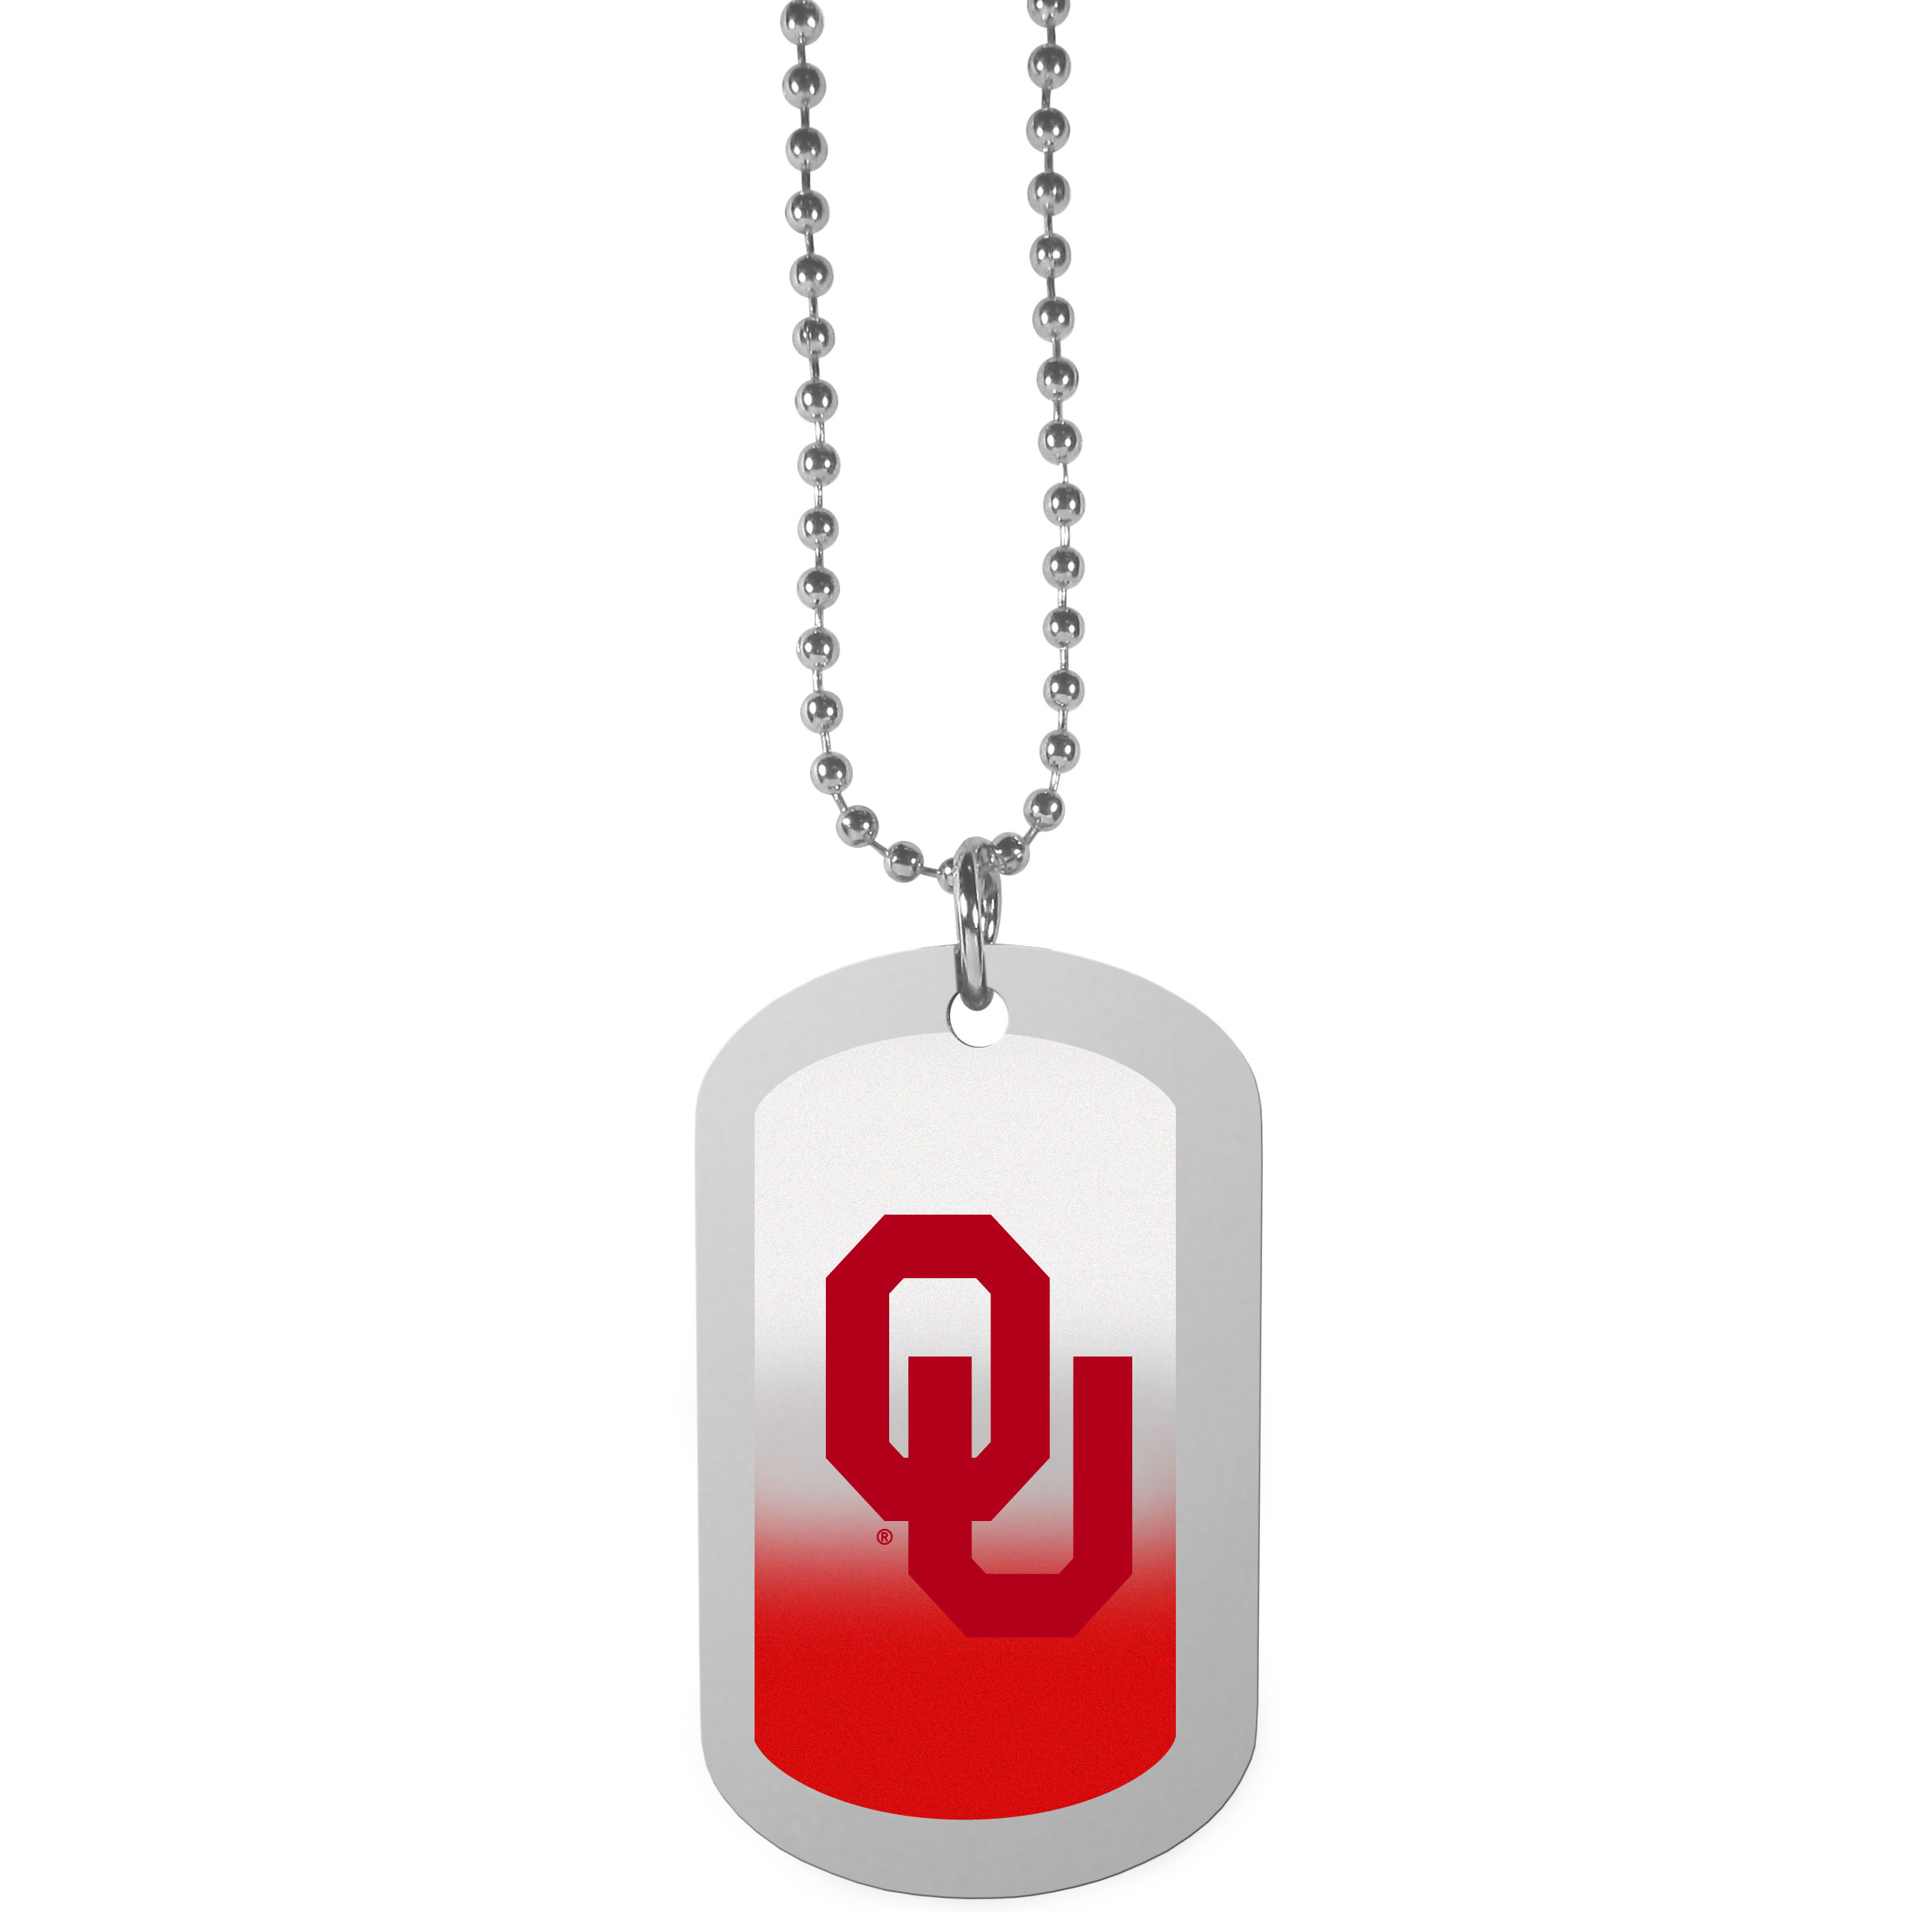 Oklahoma Sooners Team Tag Necklace - Dog tag necklaces are a fashion statement that is here to stay. The sporty version of the classic tag features a gradient print in team colors featuring a full color team logo over a high polish tag to create a bold and sporty look. The tag comes on a 26 inch ball chain with a ball and joint clasp. Any Oklahoma Sooners would be proud to wear this attractive fashion accessory.